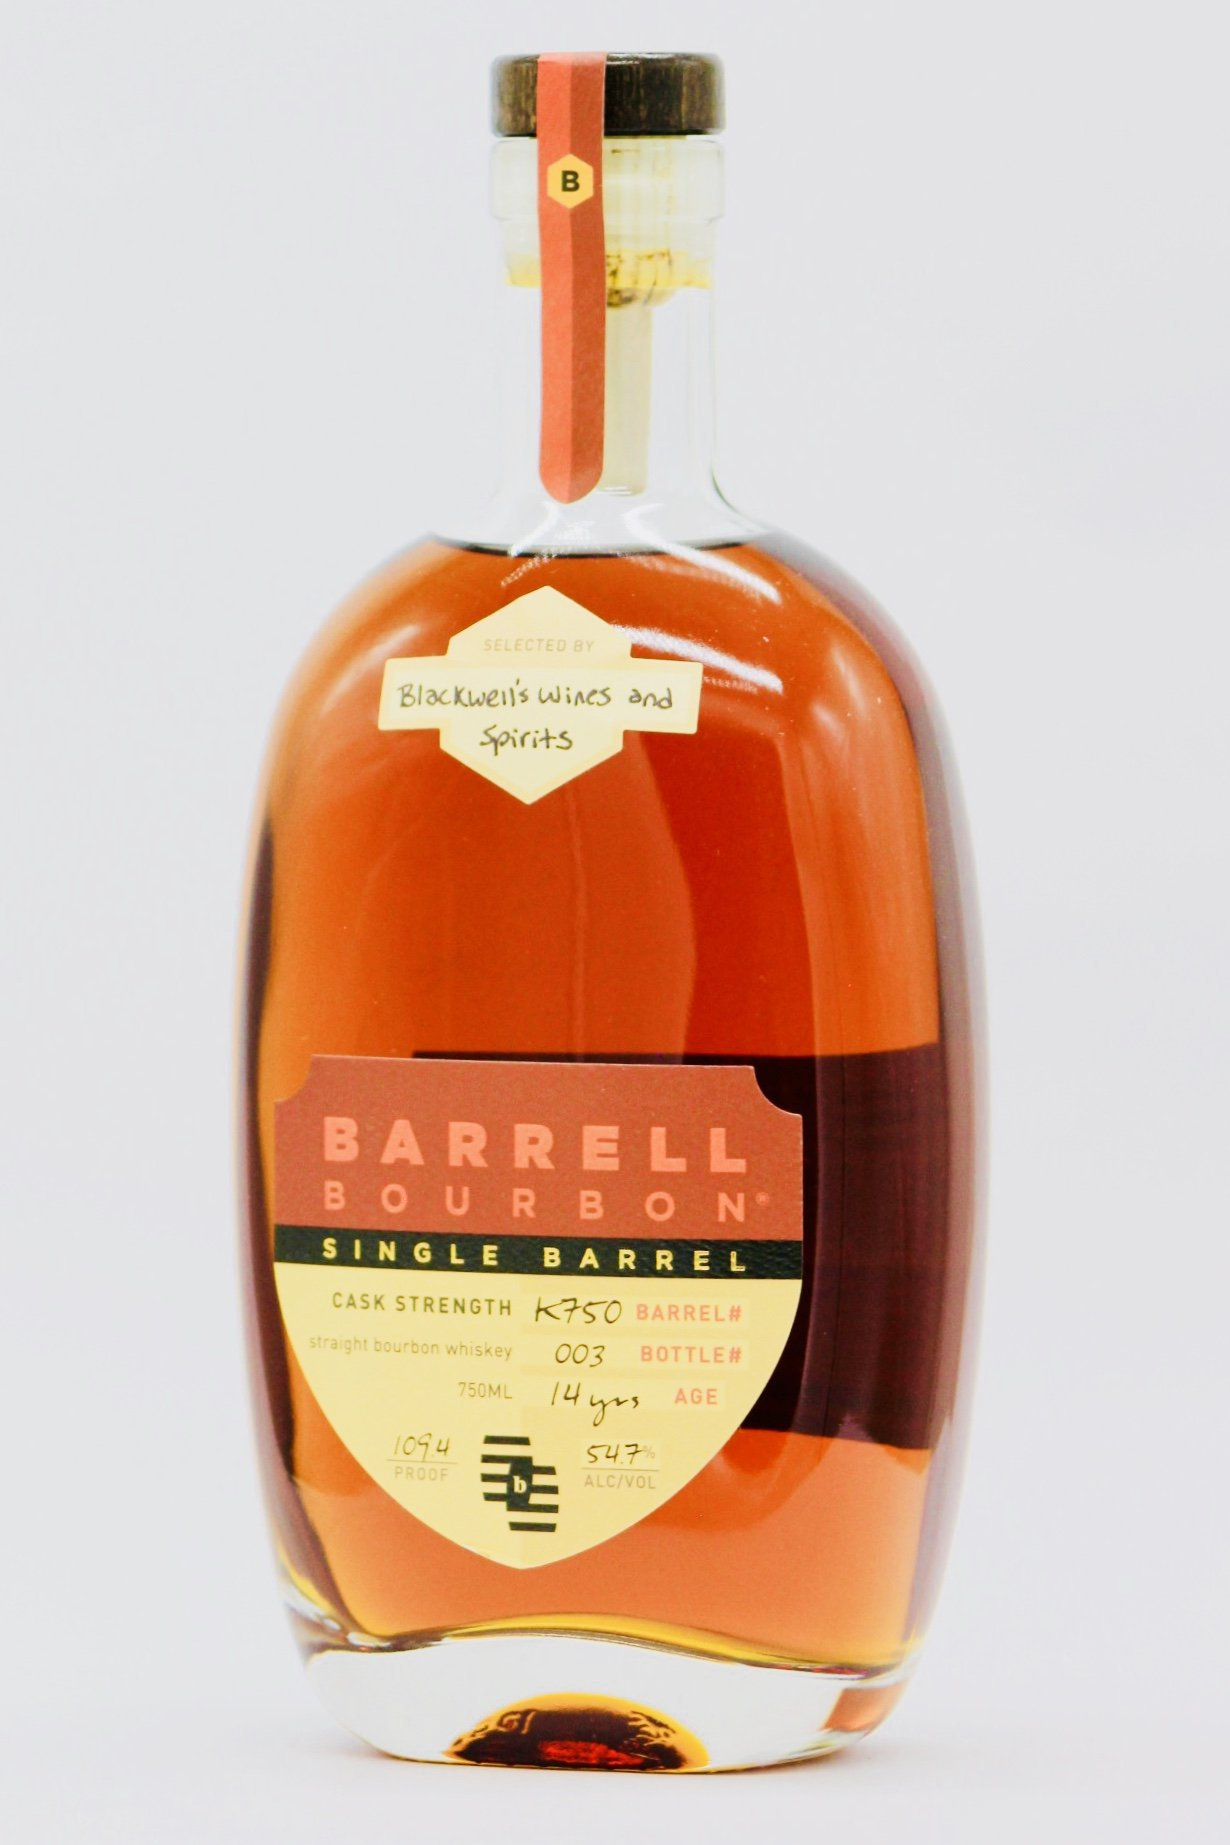 Barrell Bourbon Single Barrel 14 Year